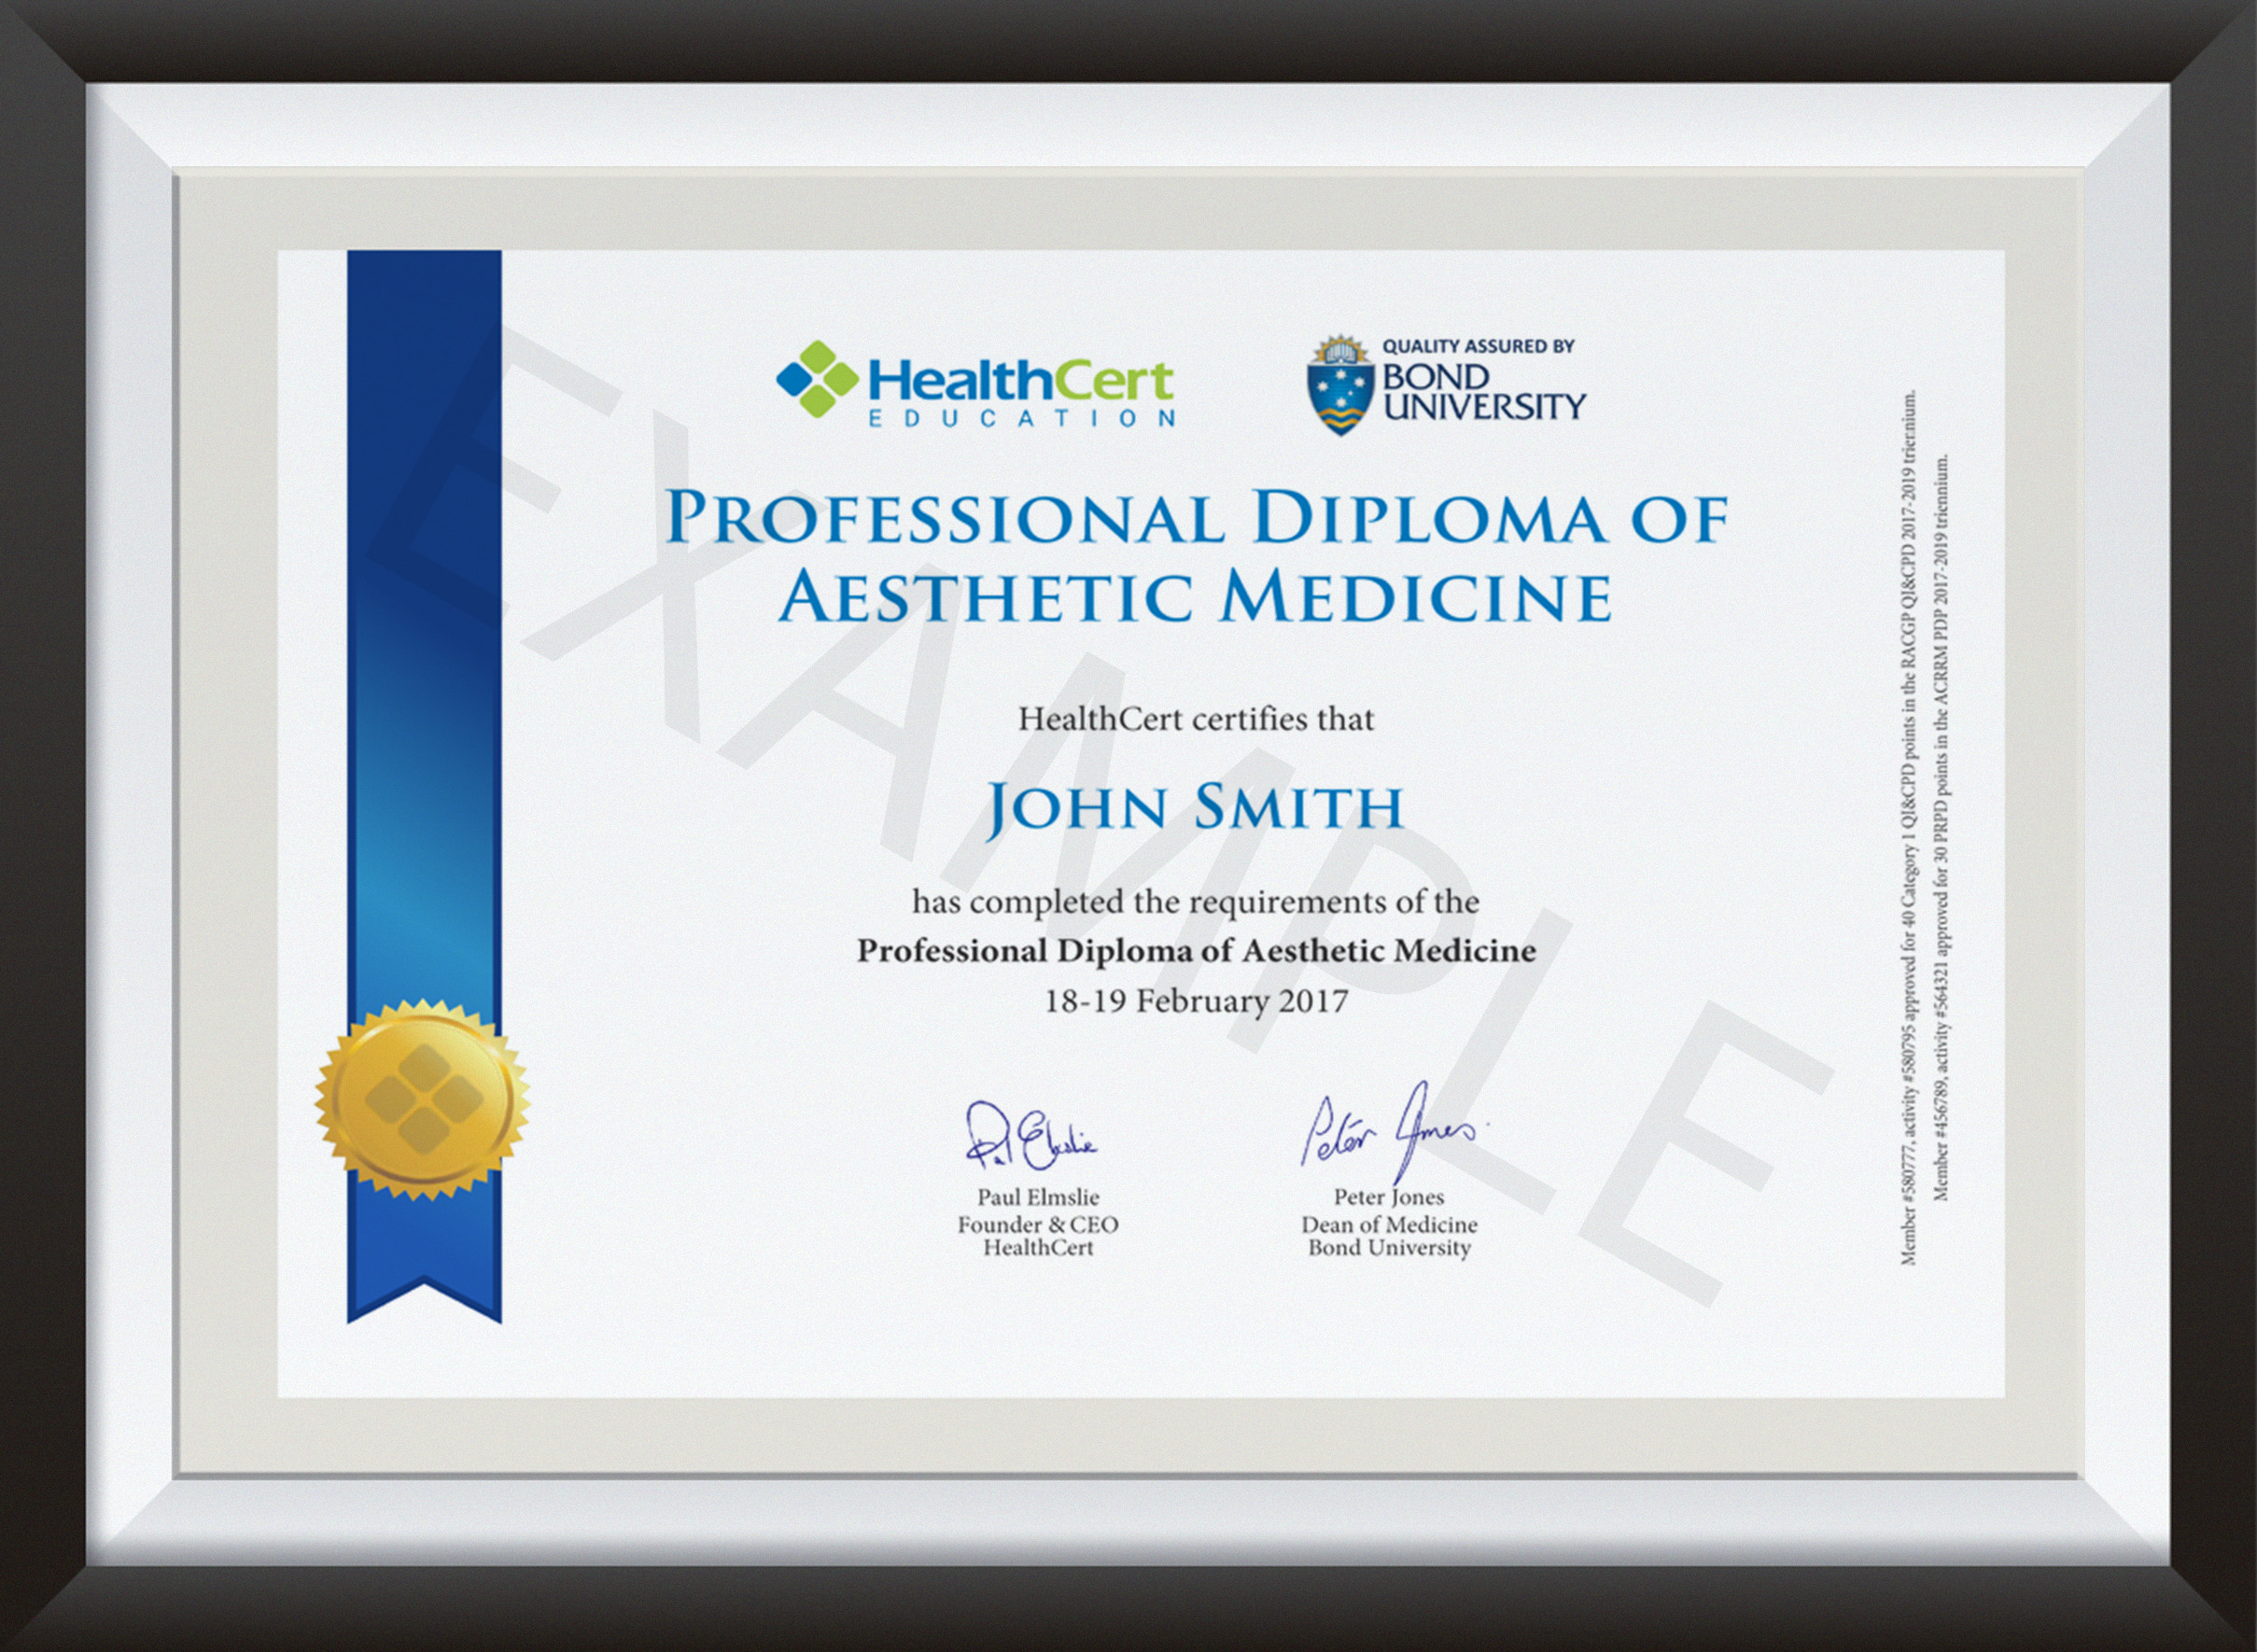 Professional Diploma of Aesthetic Medicine